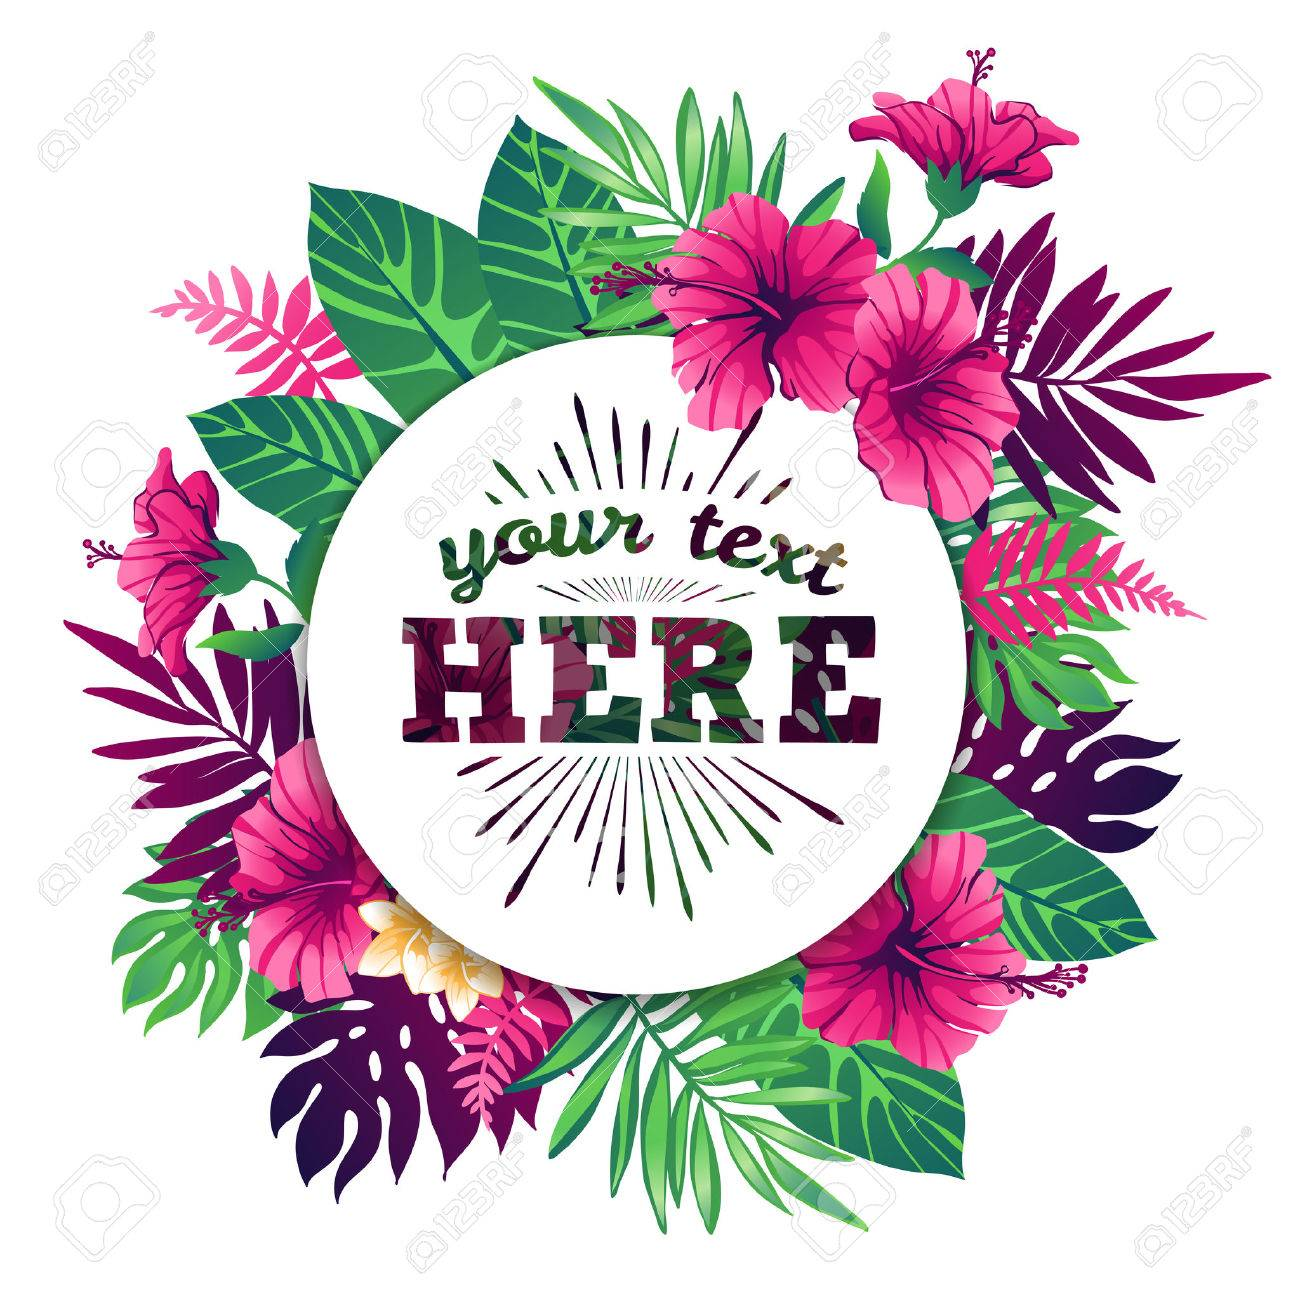 Tropical vector illustration with place for your text and tropical elements, exotic flowers and leaves isolated on white background. - 50477578